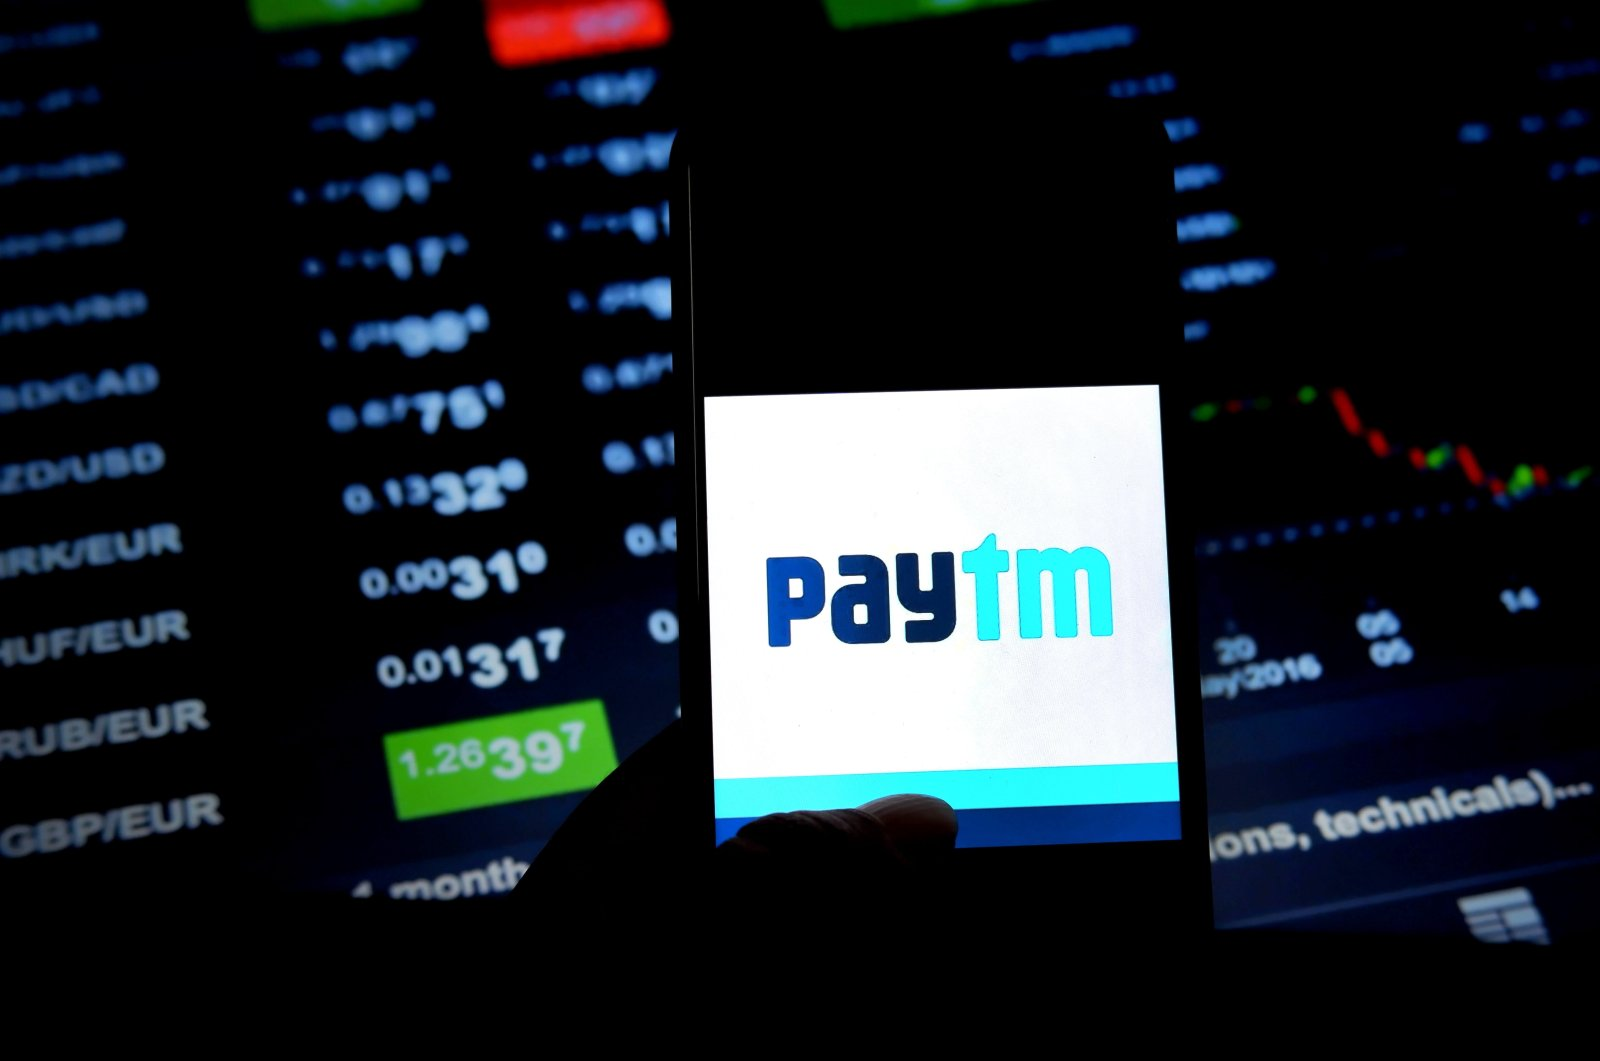 In this photo illustration, popular e-commerce application Paytm's logo is displayed on a smartphone, Oct. 9, 2019. (Getty Images)